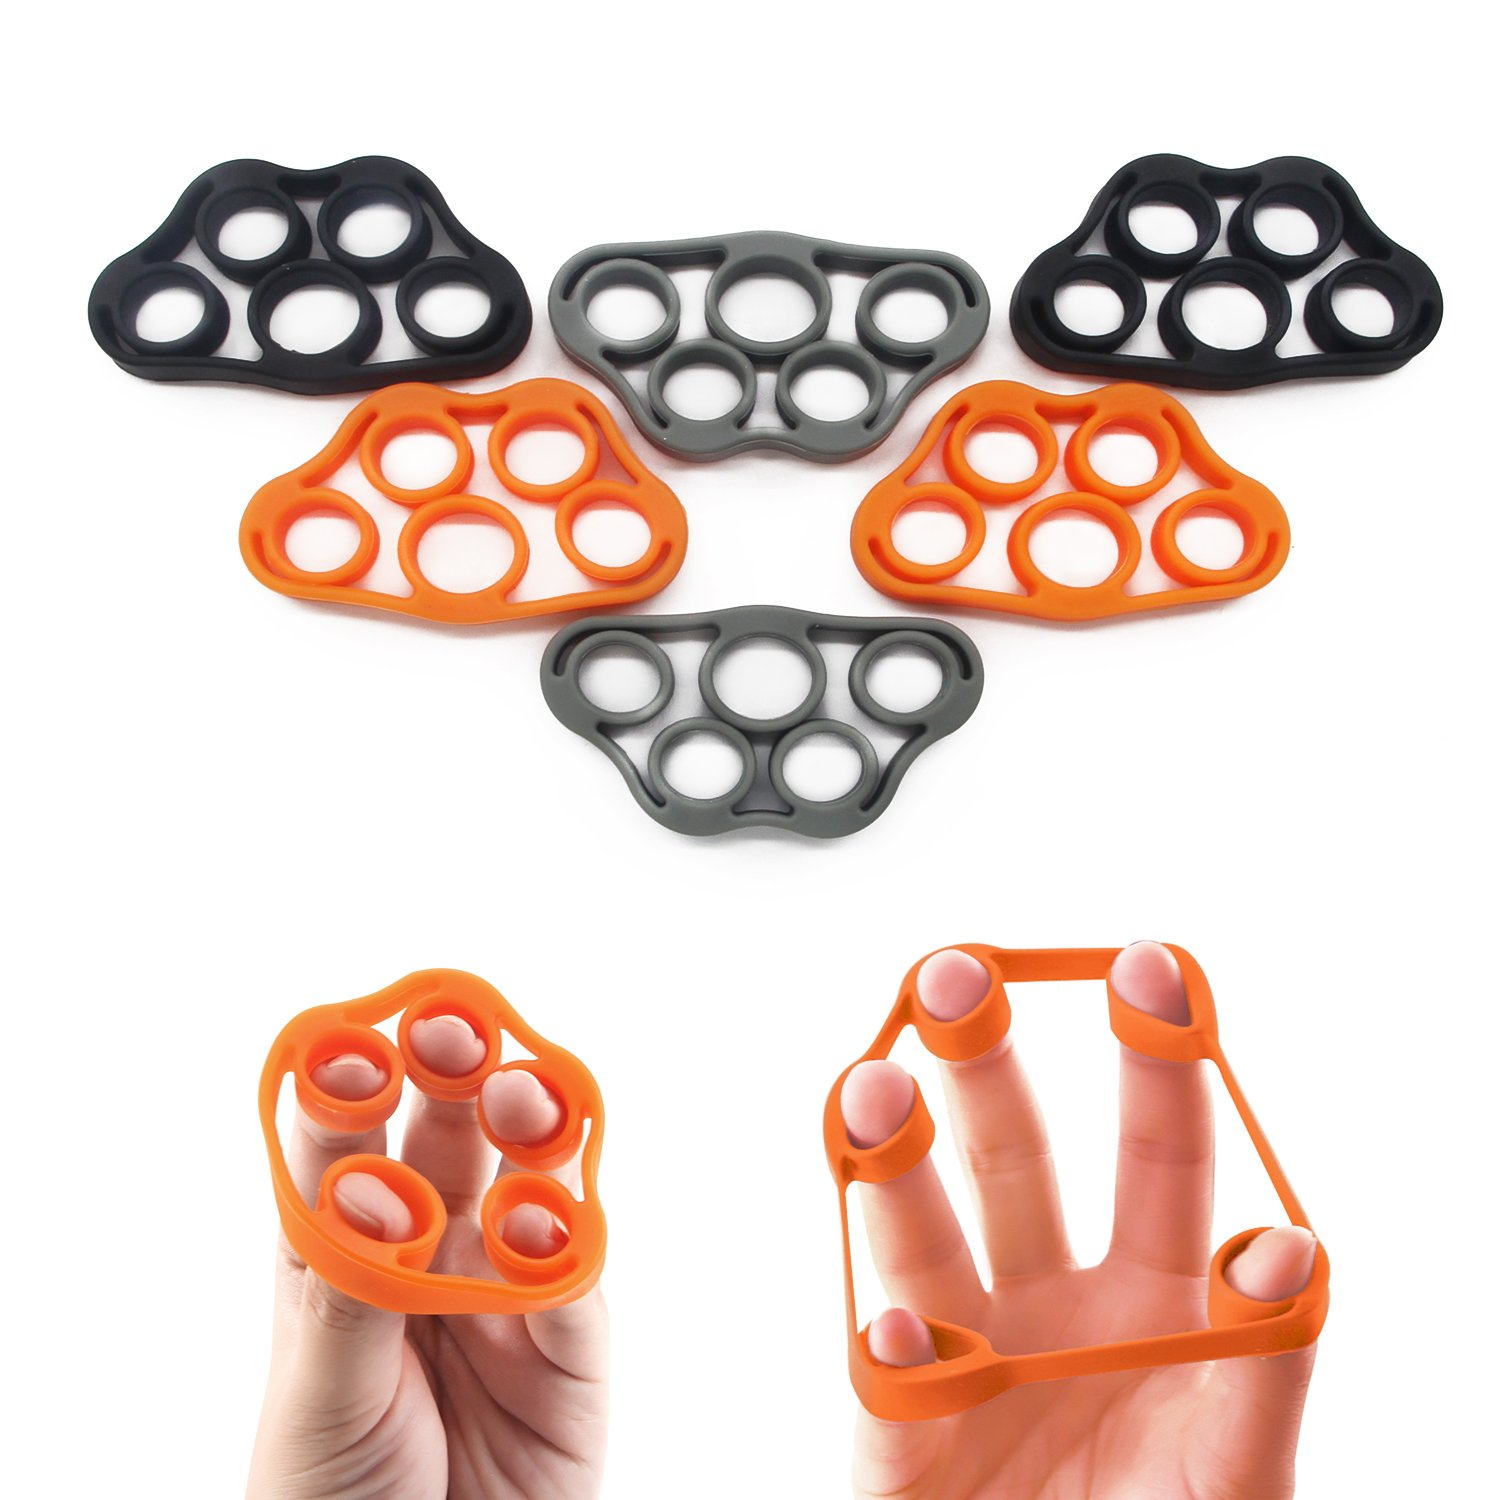 PROCIRCLE Finger Stretcher Hand Resistance Band, 6 Pieces (Assorted Colors)